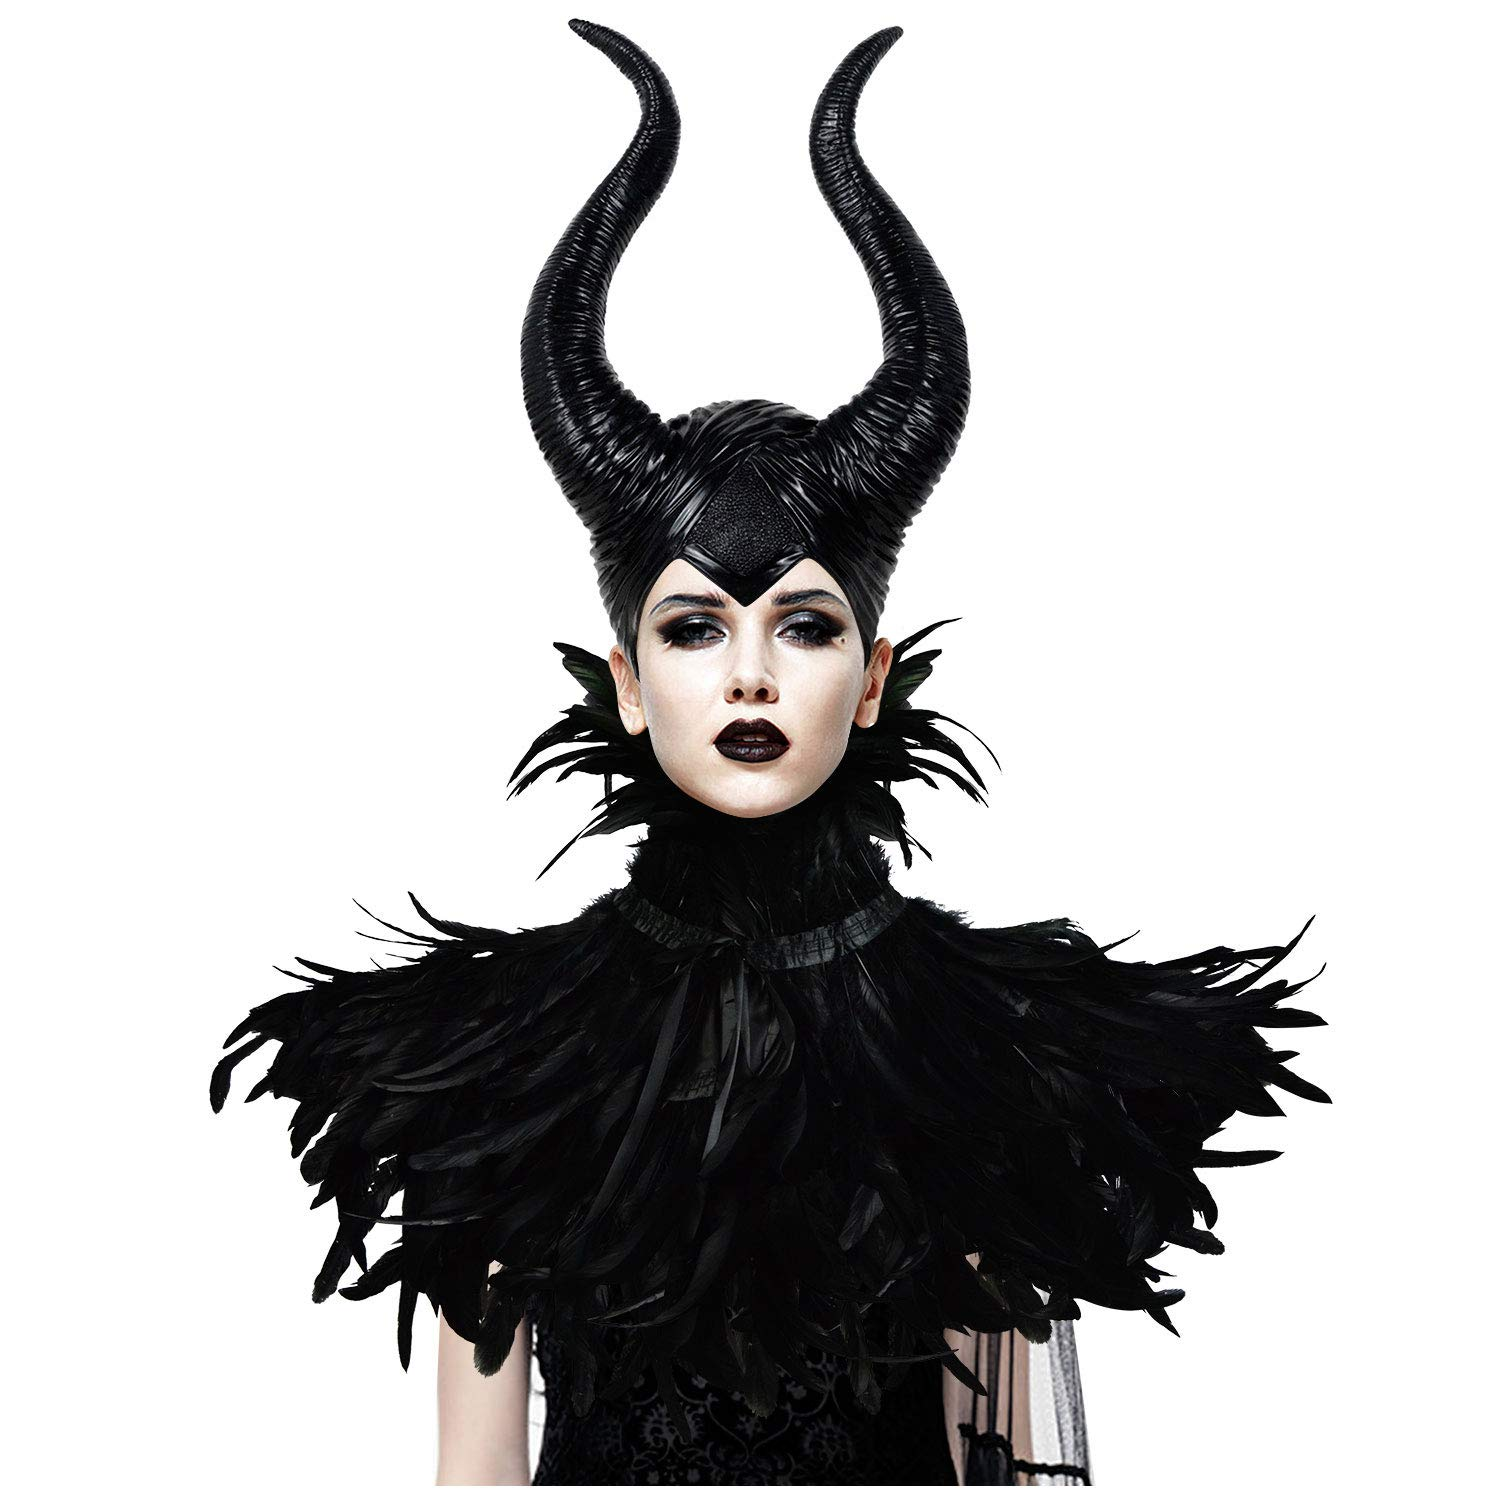 Homelex Gothic Black Crow Costume Feather Cape Shawl with Maleficent Horns Set (Collar&Horns) by HOMELEX